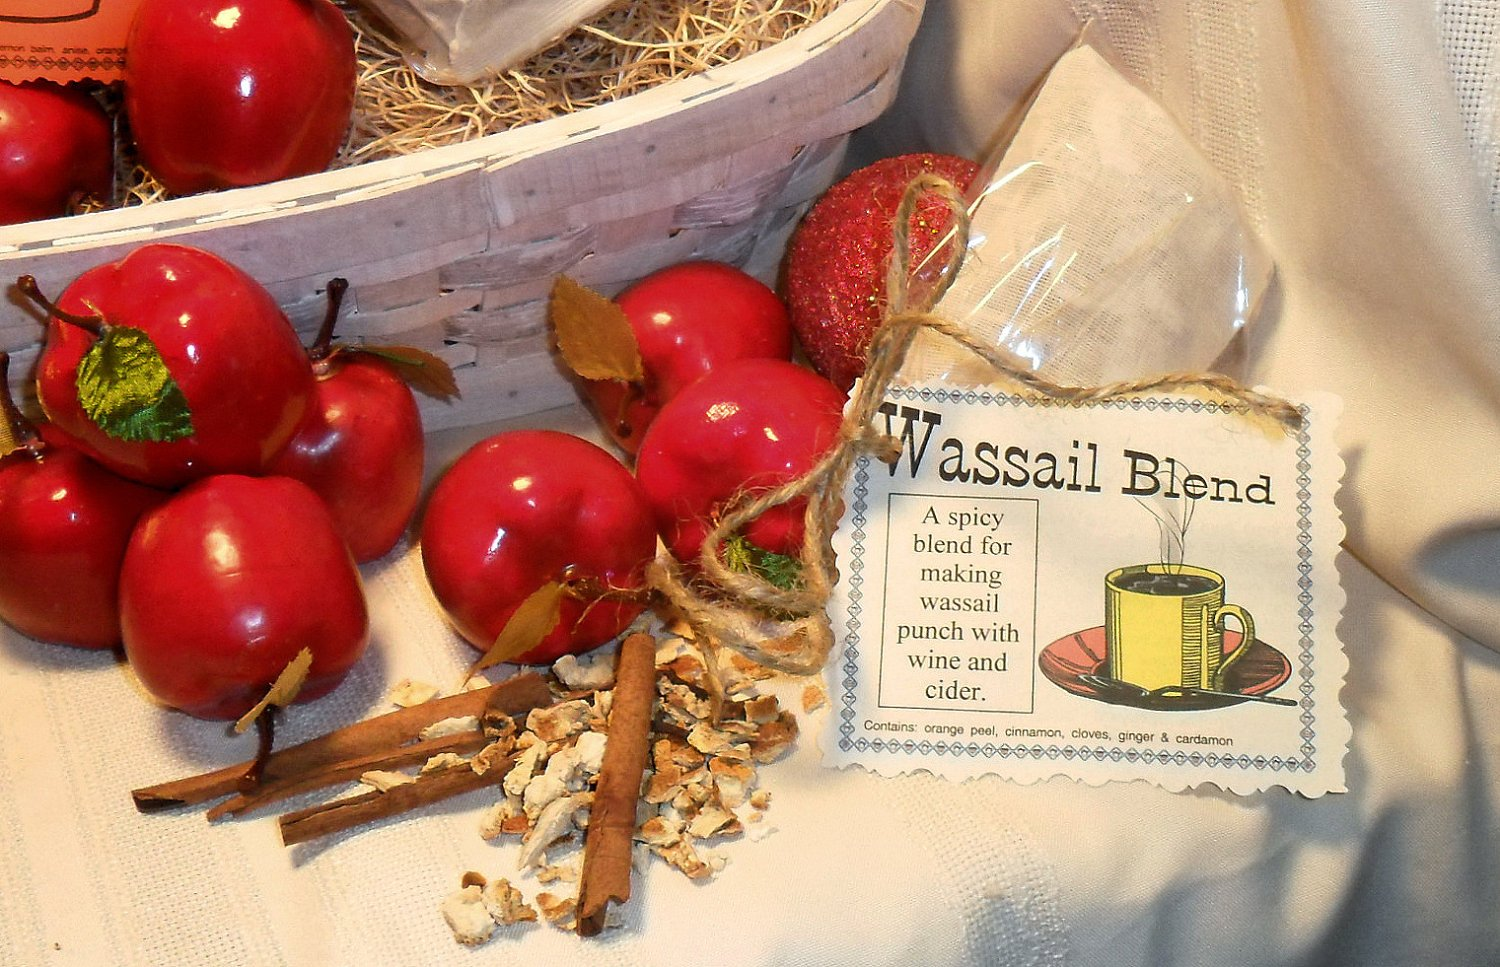 Wassail Spice and Herb Blend, makes cider and wine special, glogg, cinnamon, cider blend, spiced wine, cardamom